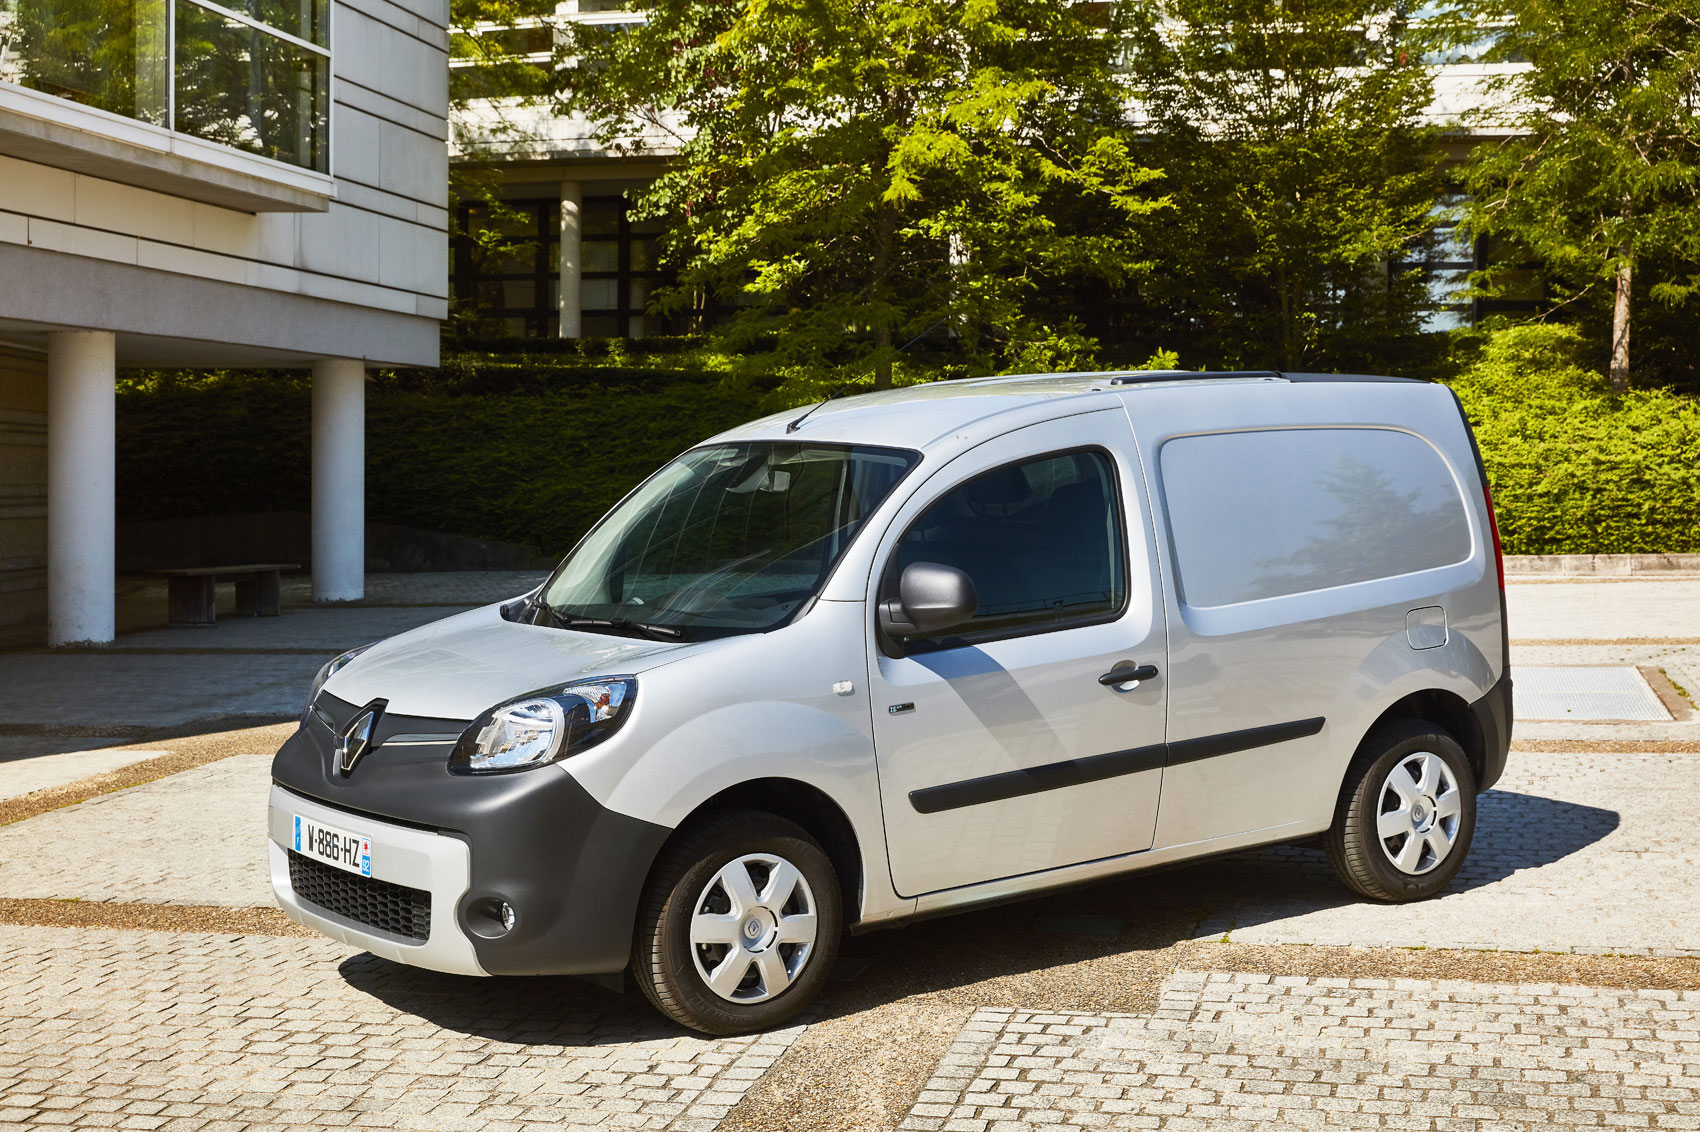 renault kangoo electric 44kw 33kwh ze ml20 business van auto road test parkers. Black Bedroom Furniture Sets. Home Design Ideas